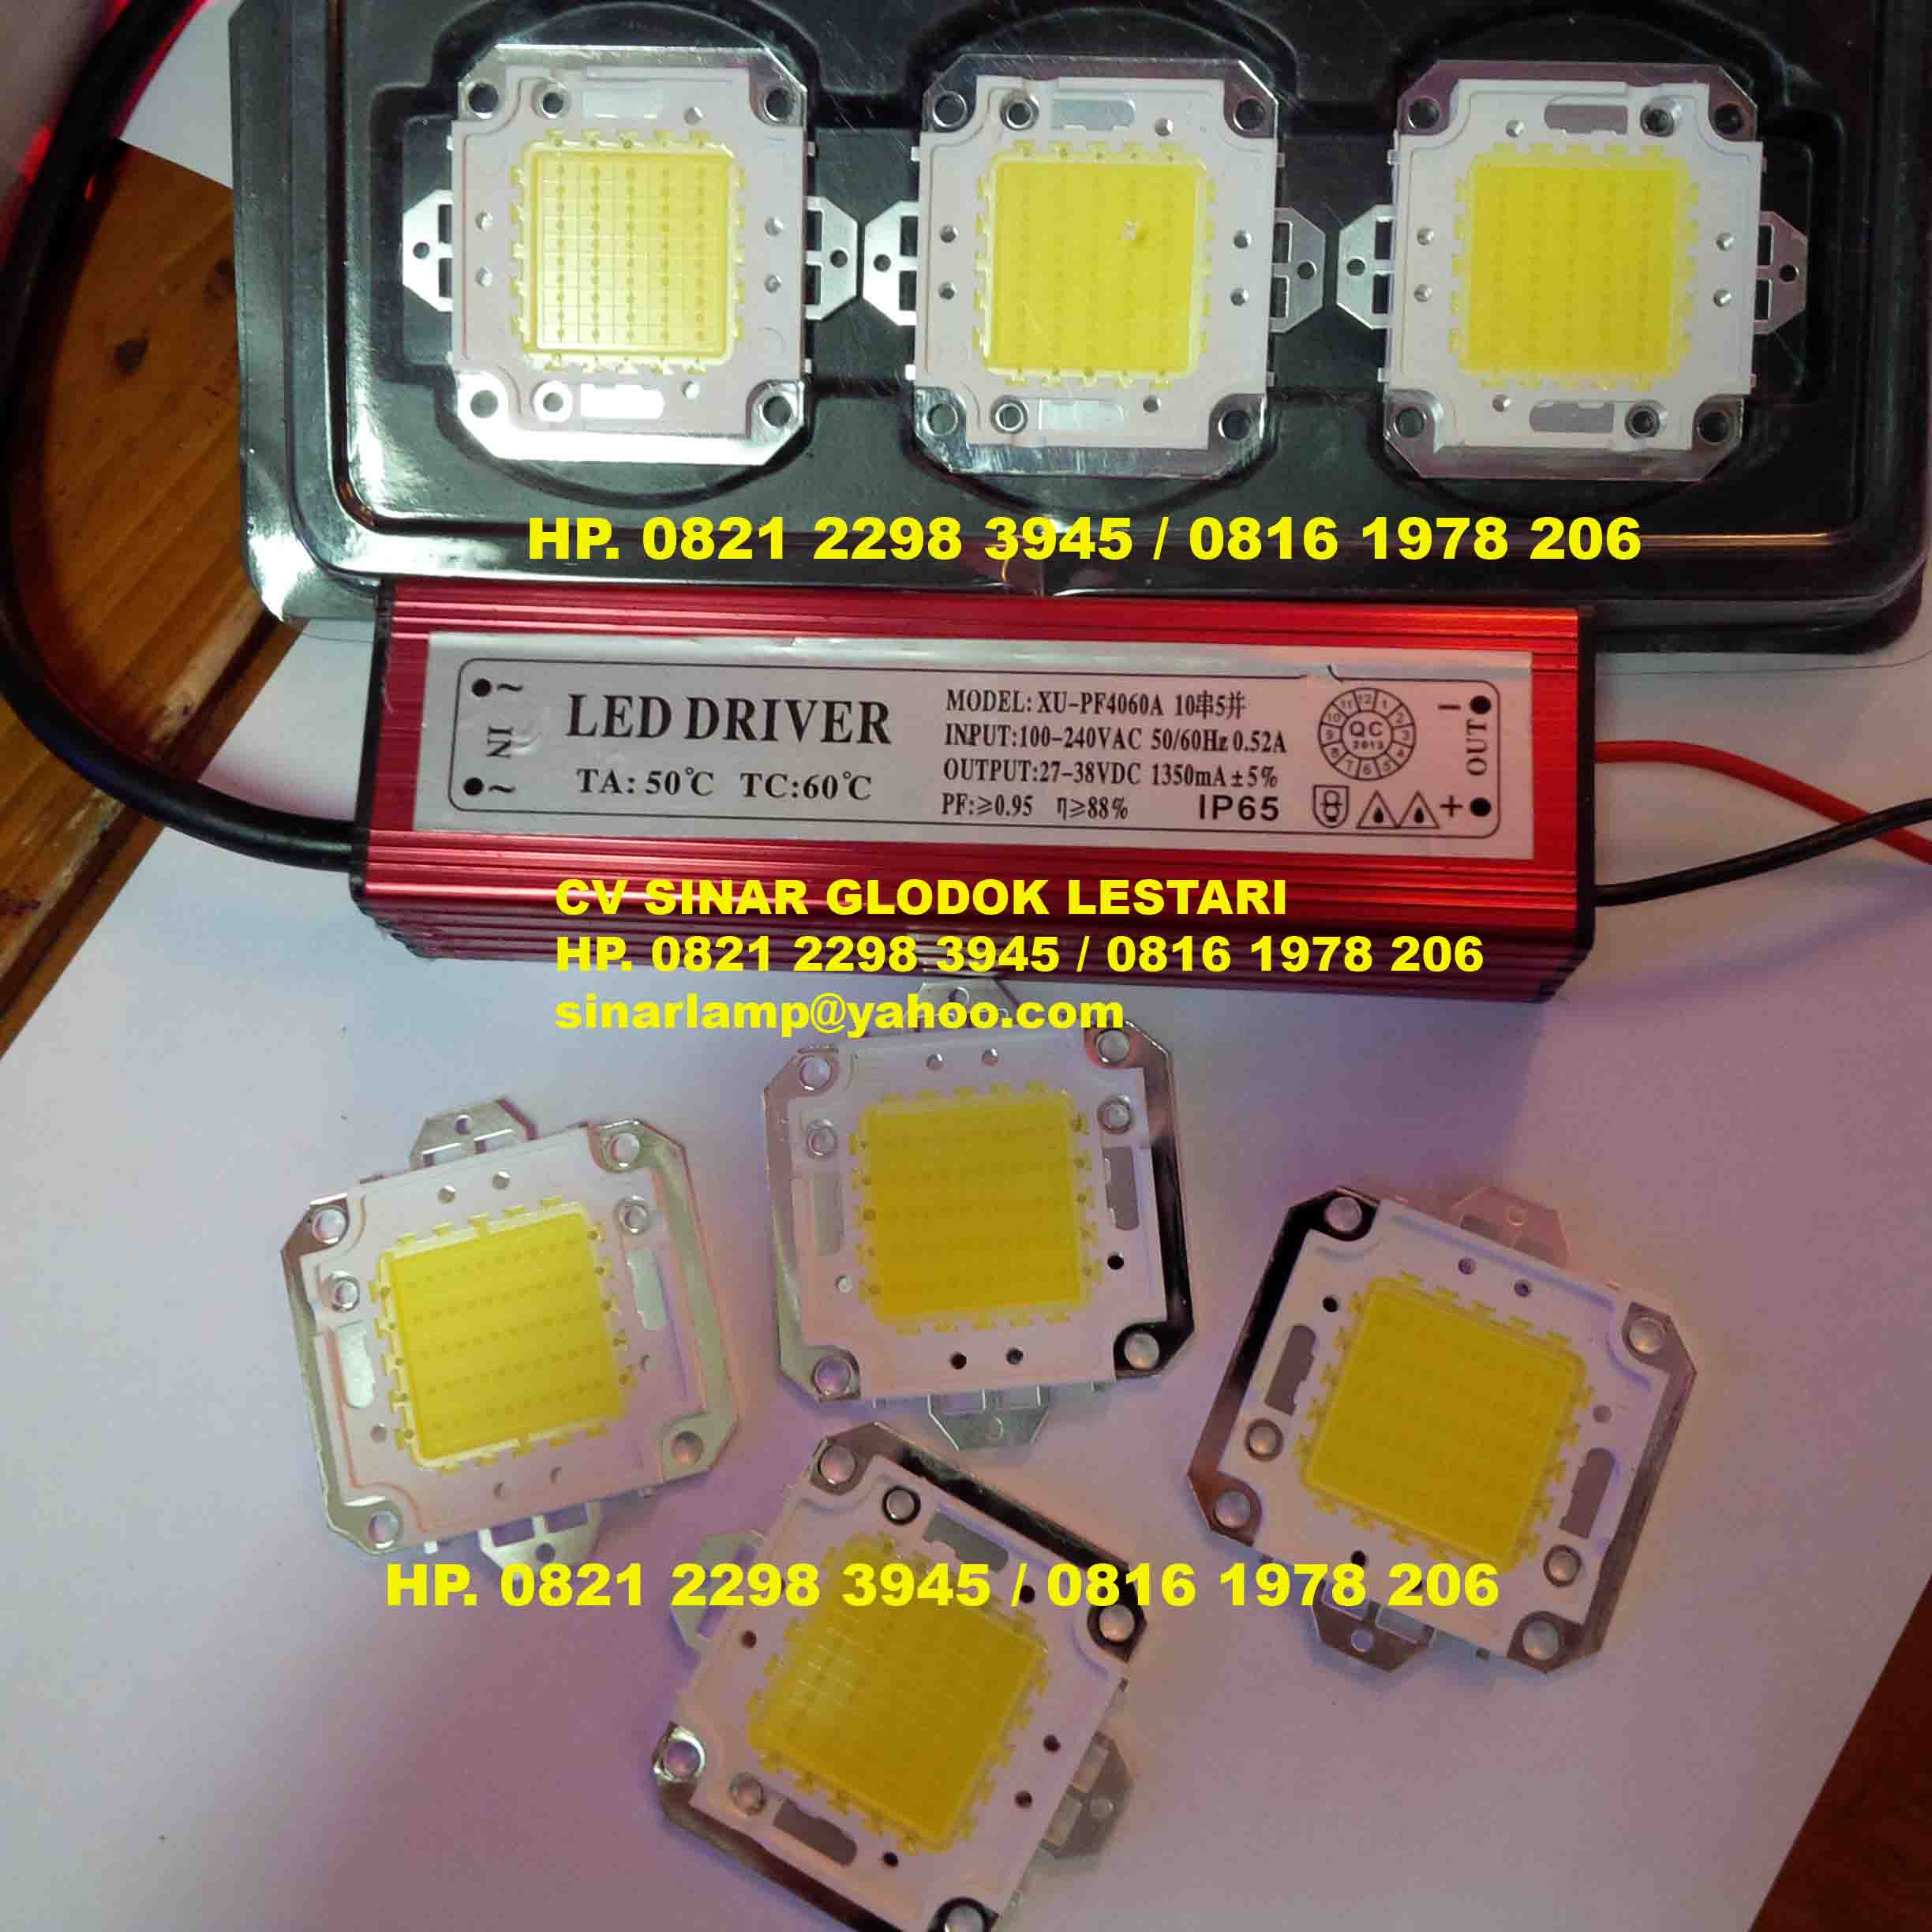 Komponen Lampu Lampu Led Chip 50 Watt Dan Trafo Led